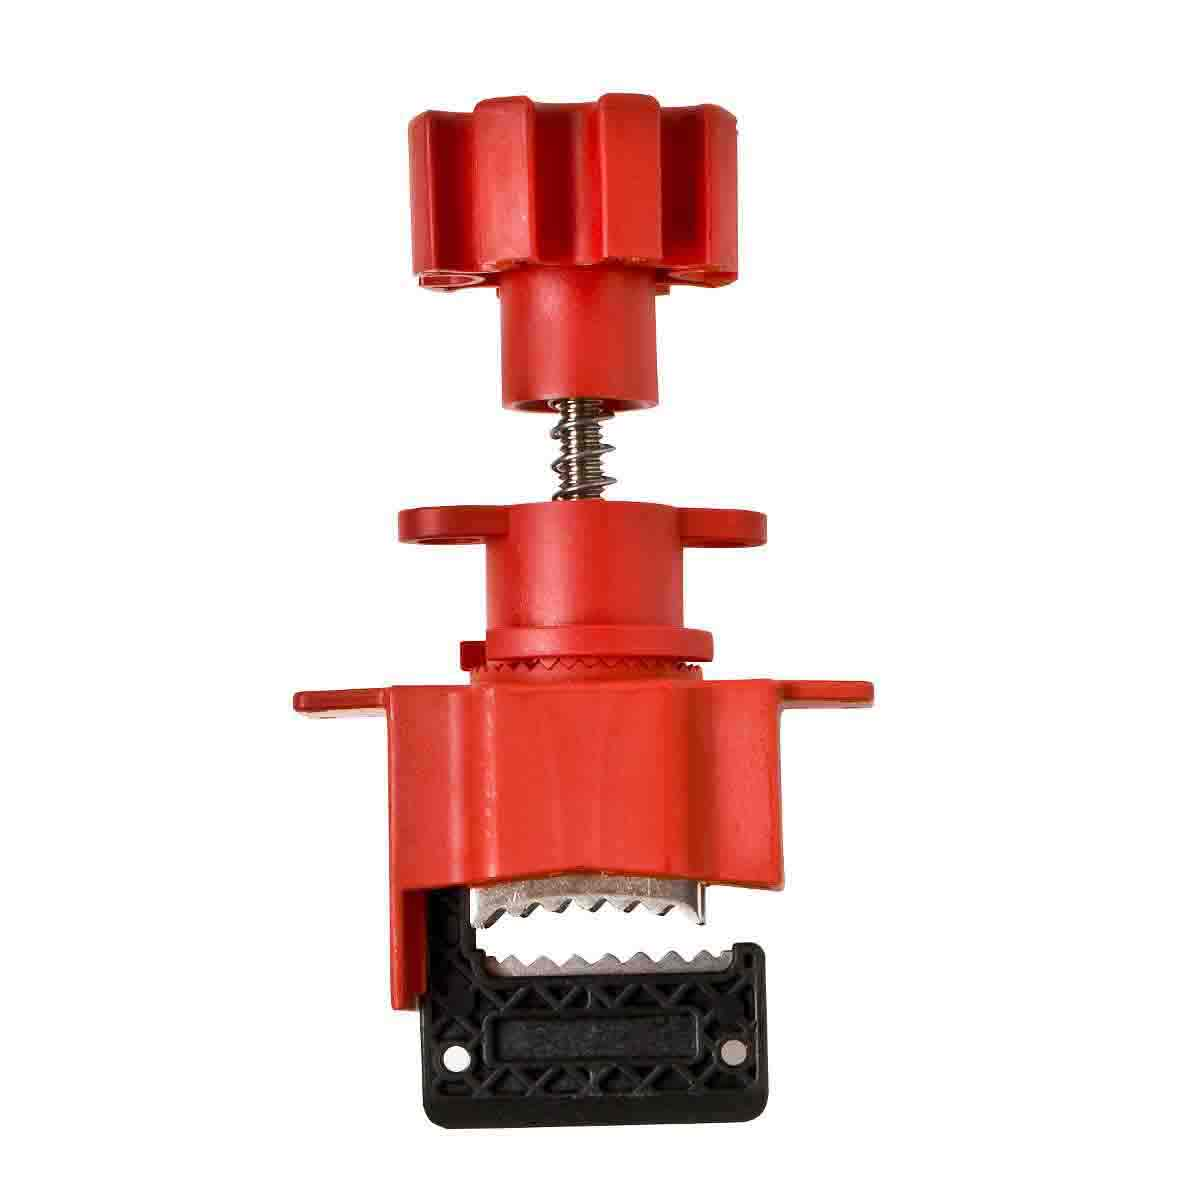 Universal Valve Lockout Base Clamping Unit